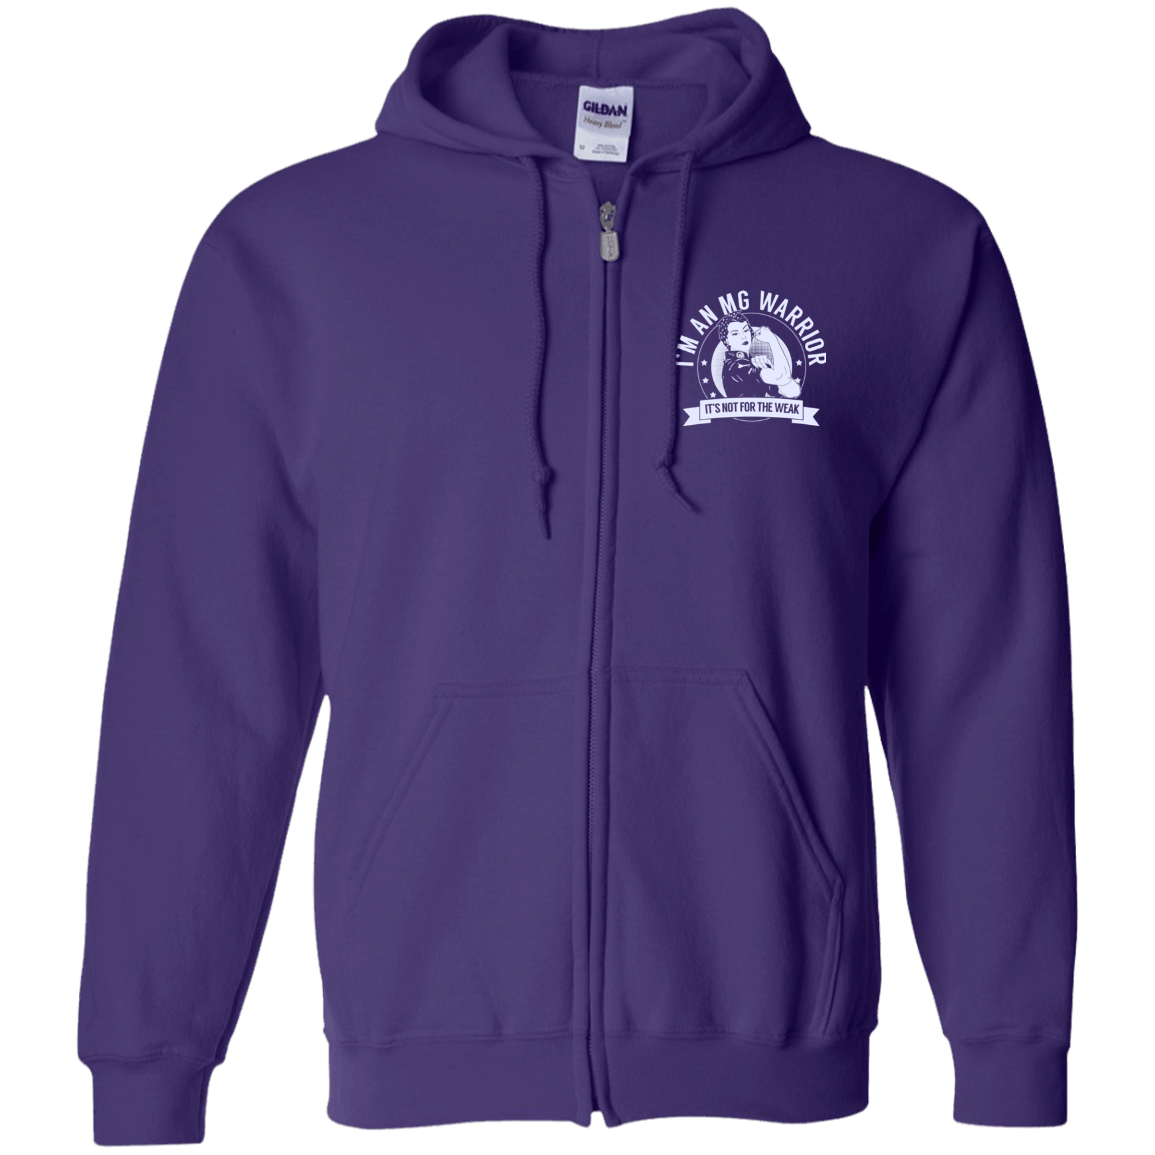 Myasthenia Gravis - MG Warrior NFTW Zip Up Hooded Sweatshirt - The Unchargeables